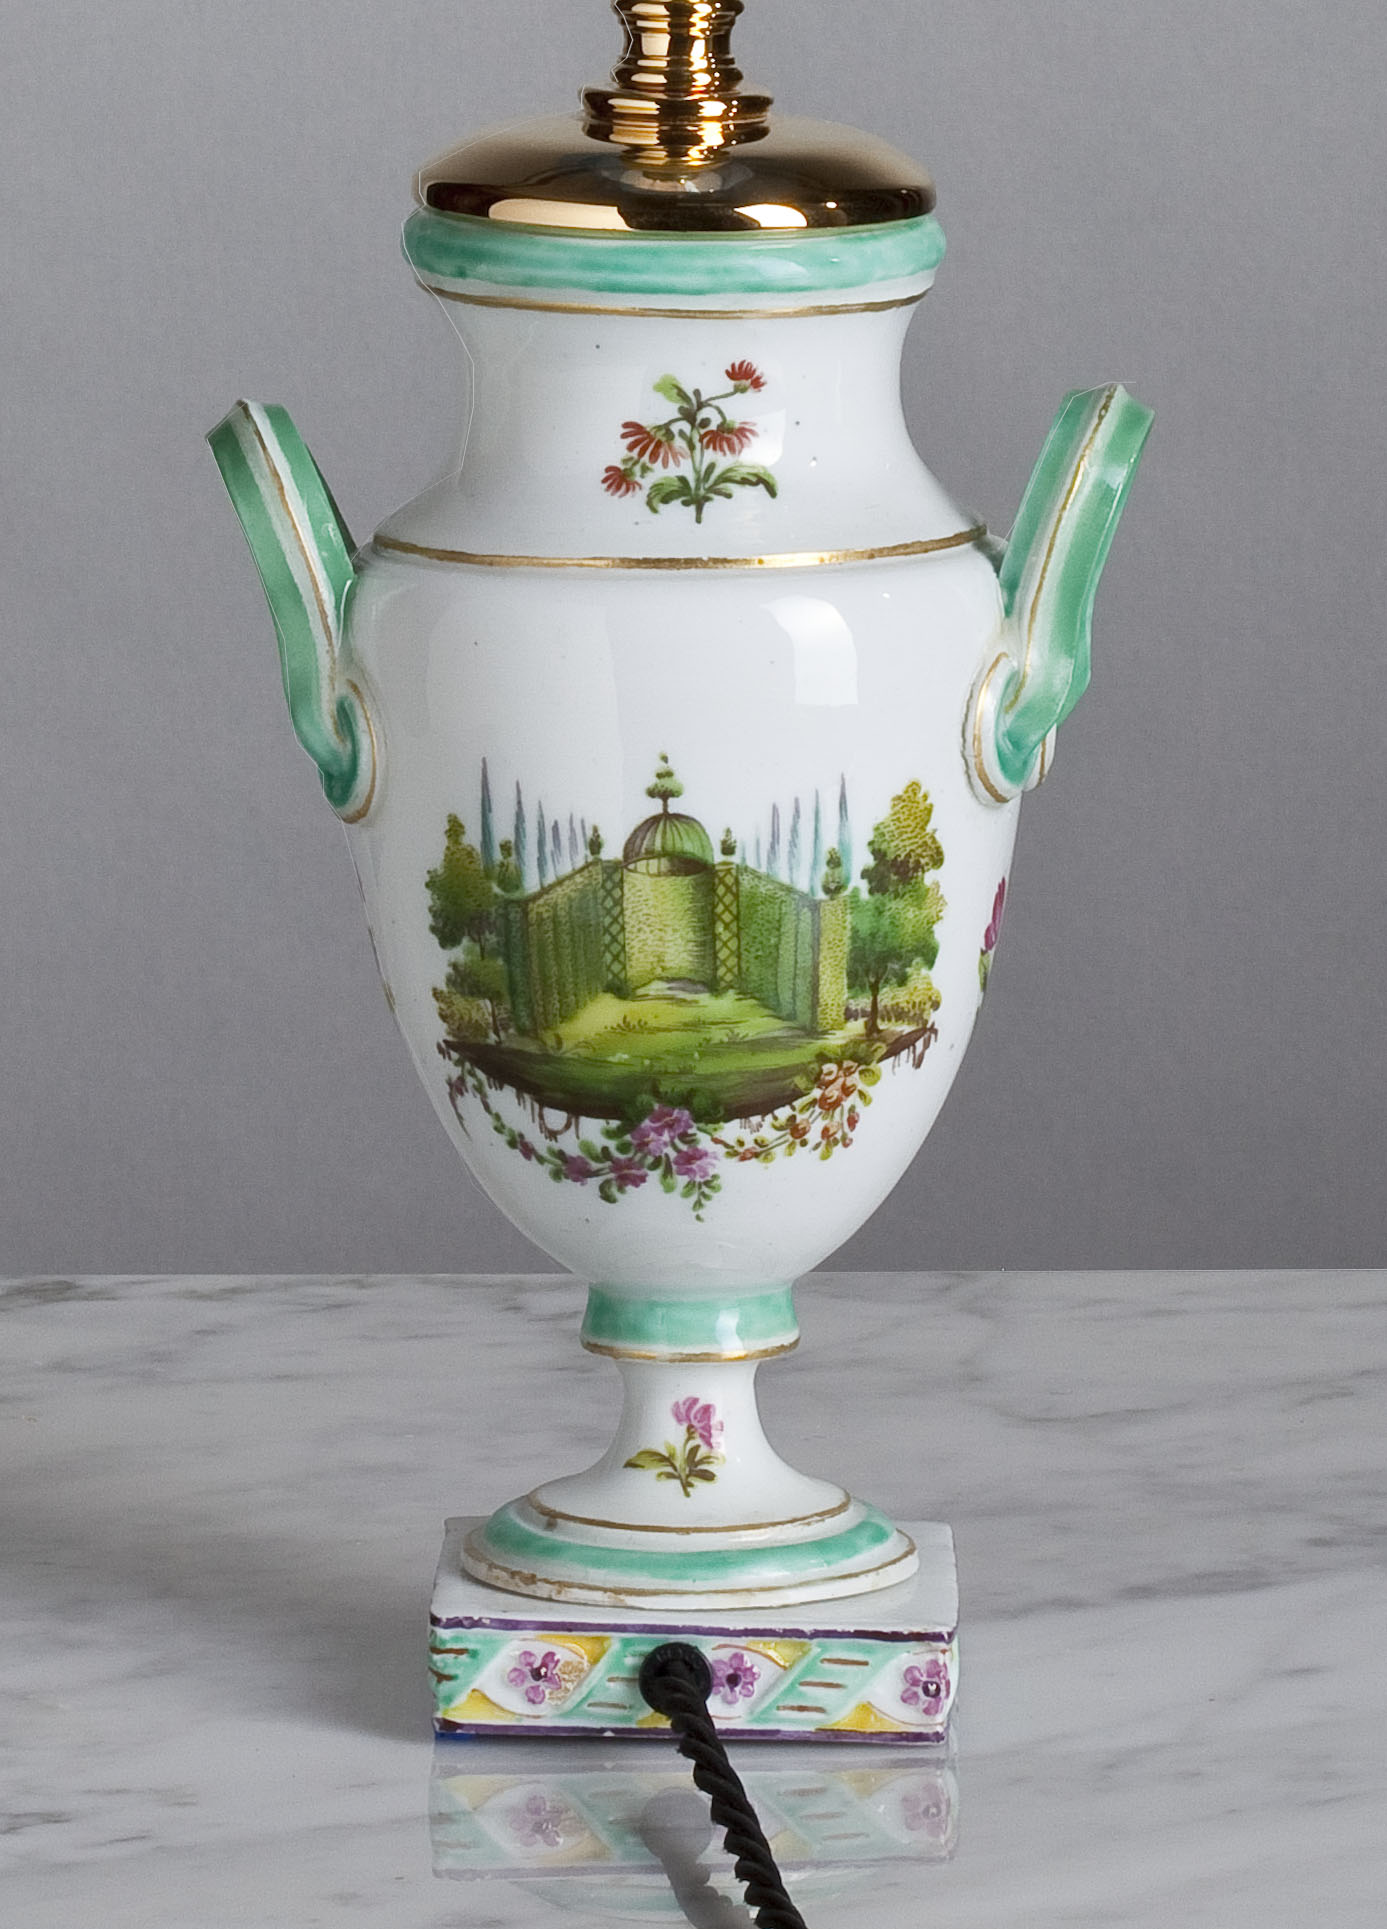 E074  A Very Sweet Little 19th Century French Porcelain Accent Lamp - Circa 1840